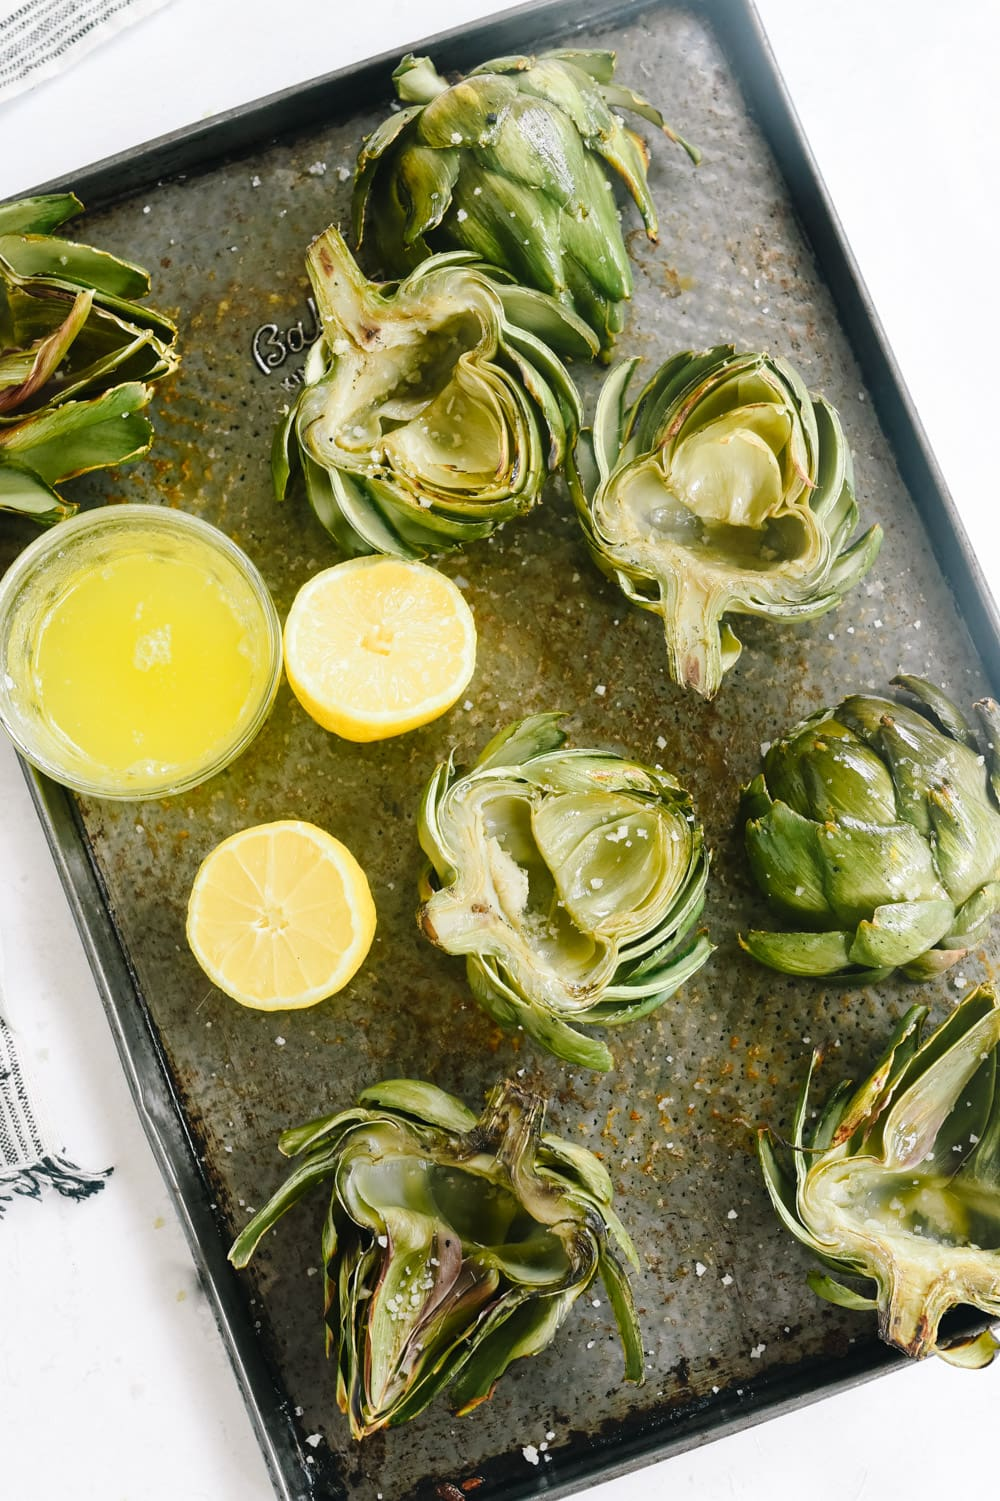 Grilled artichokes with lemon and butter